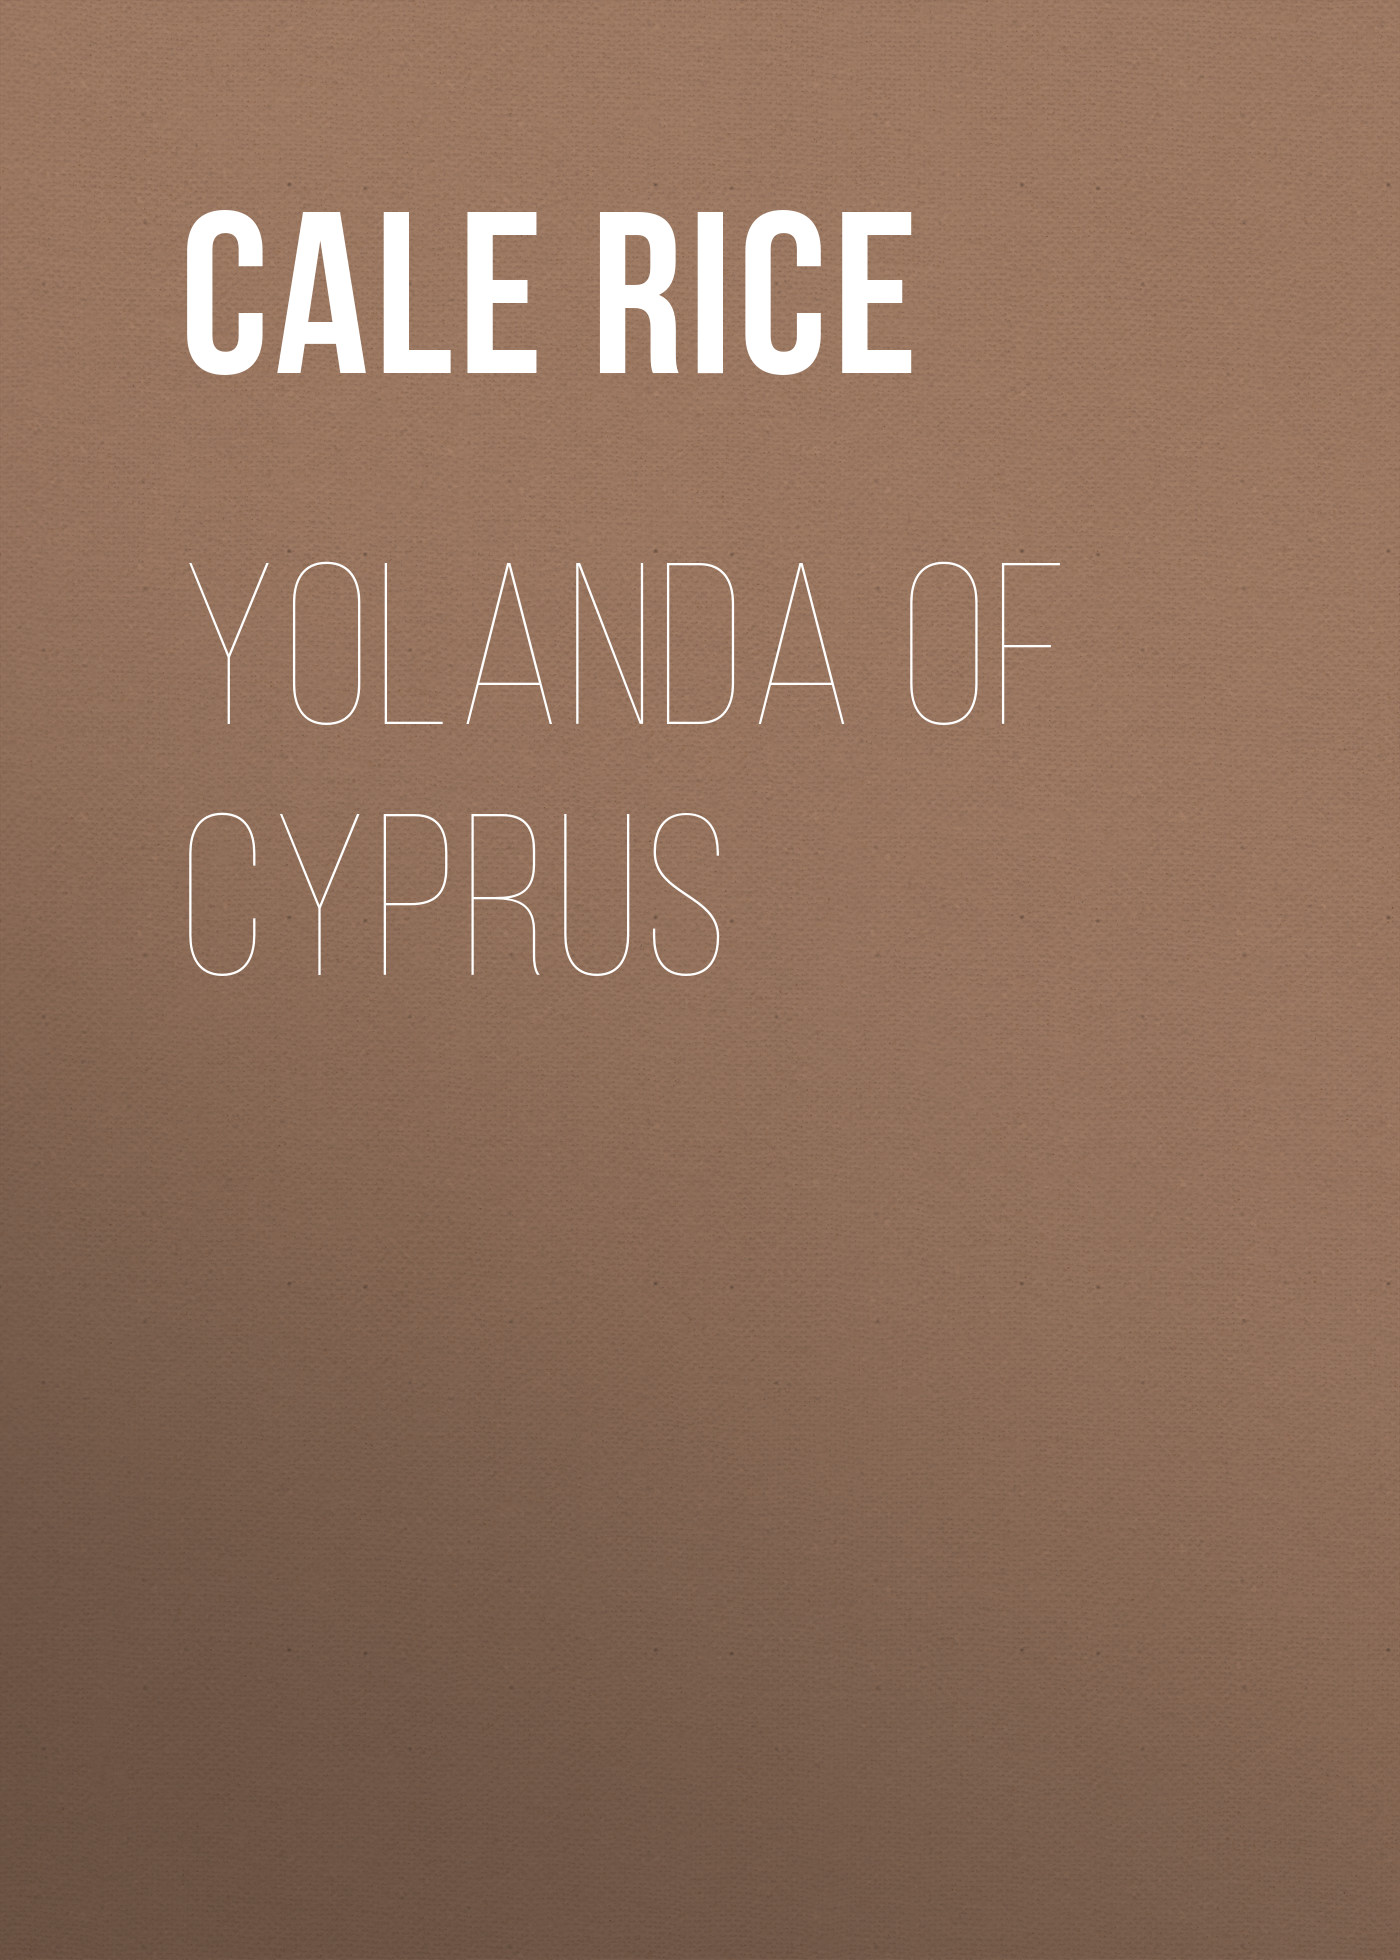 Rice Cale Young Yolanda of Cyprus productivity of rice